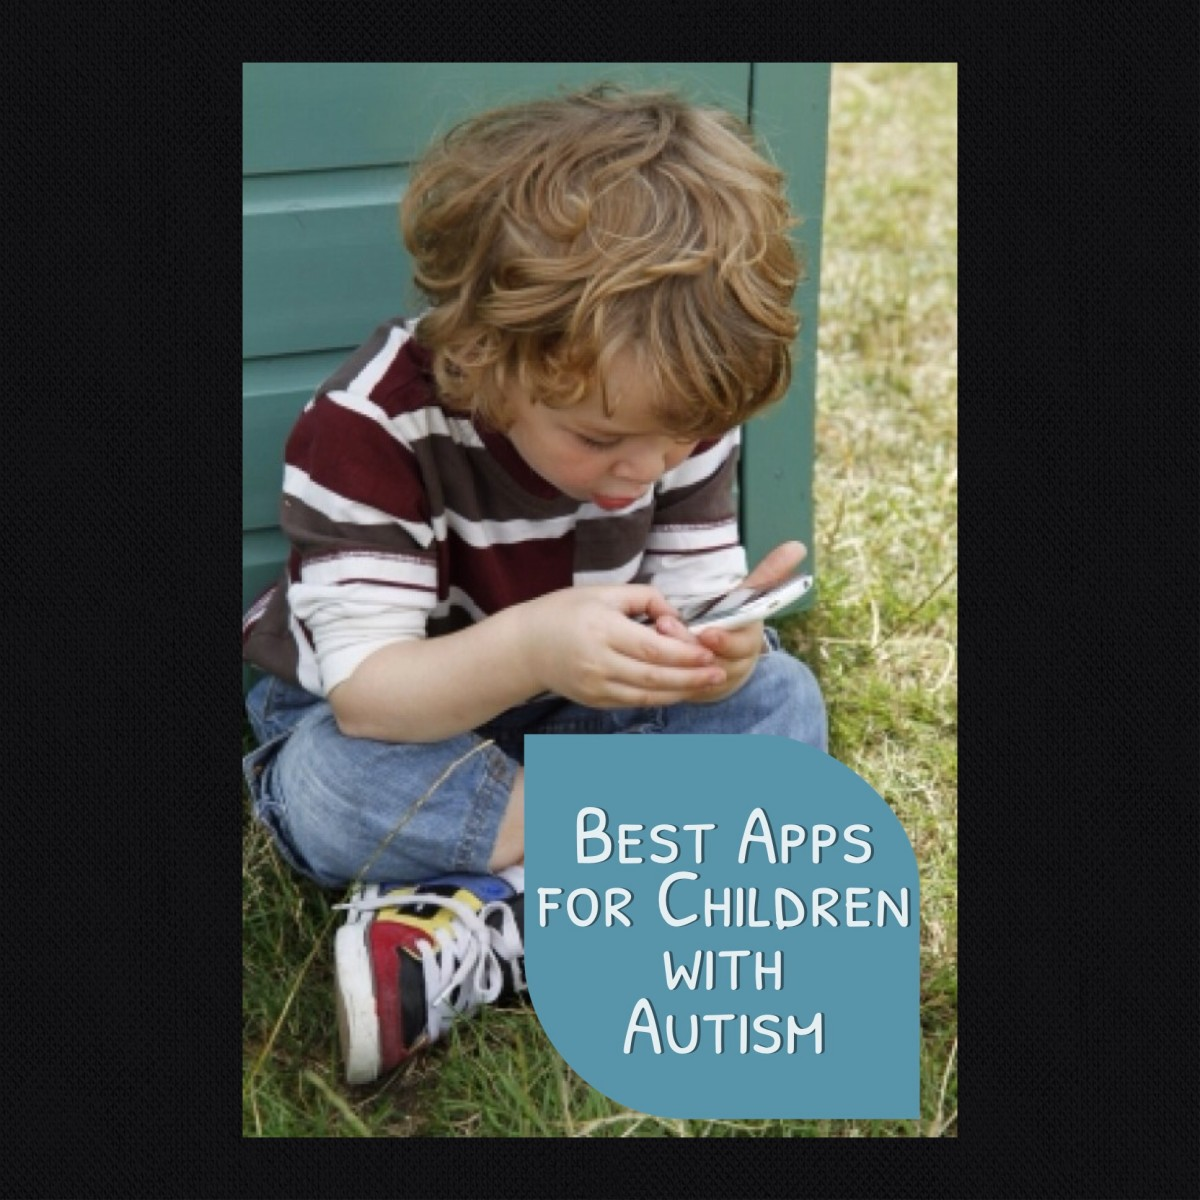 Free Phone Applications for Kids with Autism: iPhone and iPod Apps for Autistic Children